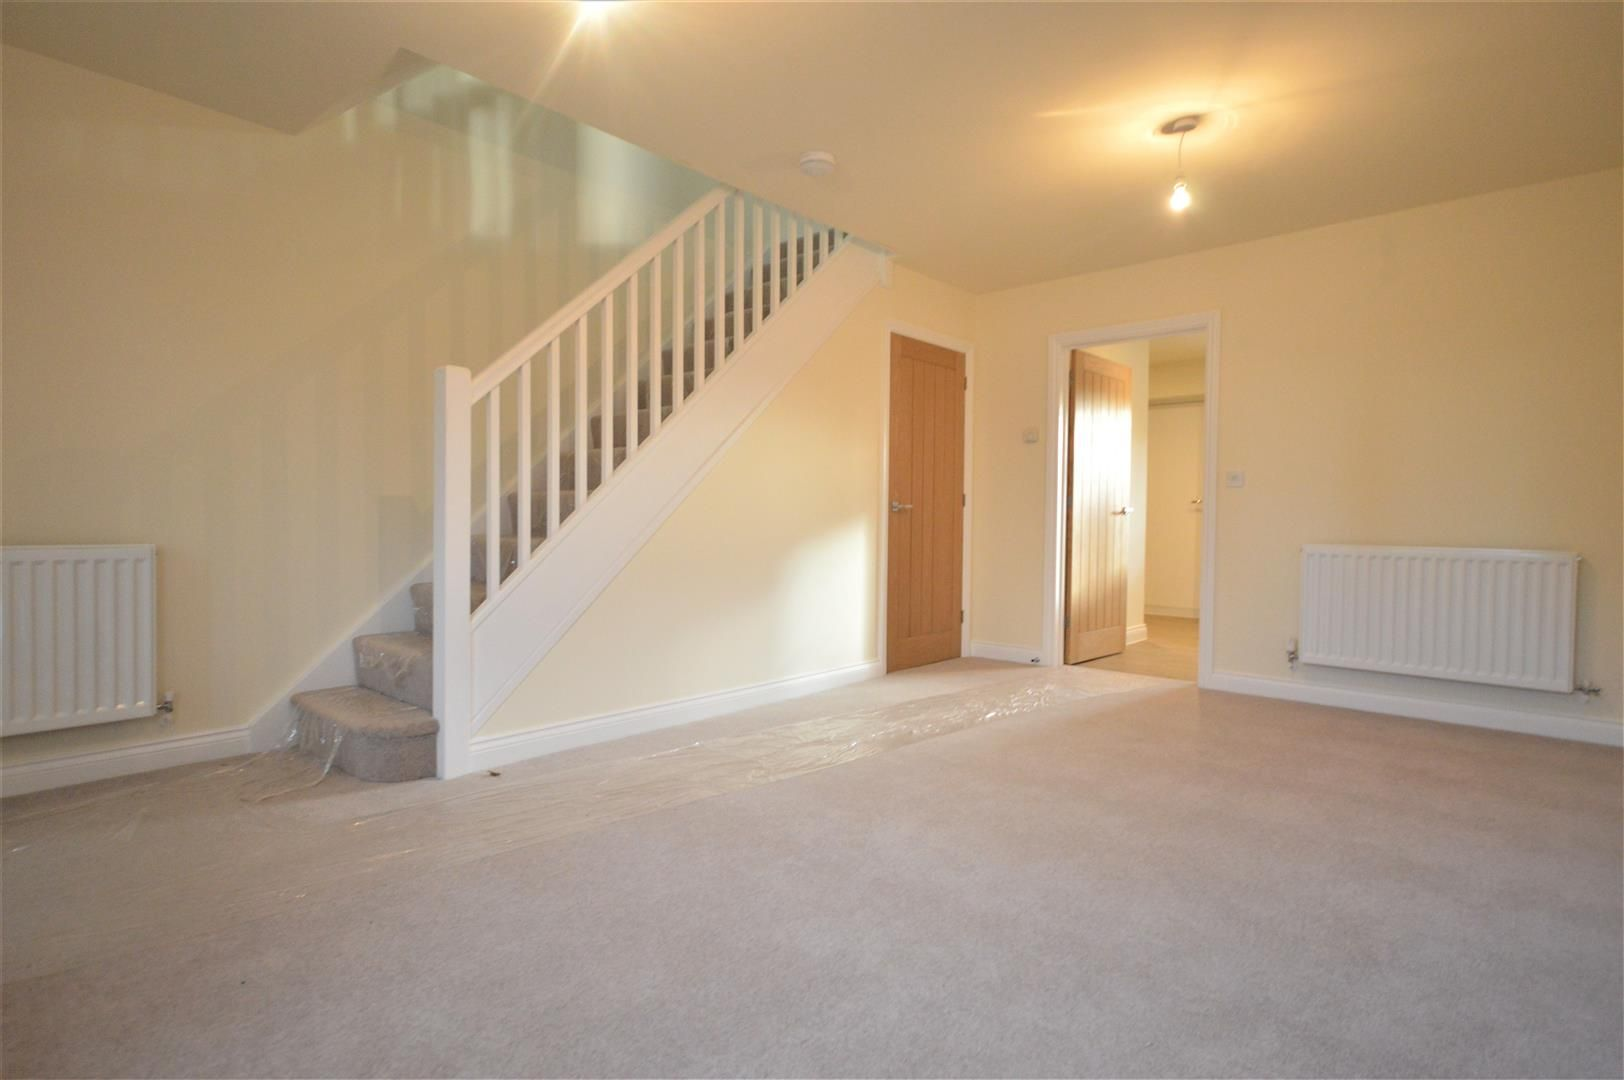 2 bed terraced for sale in Kingsland 5